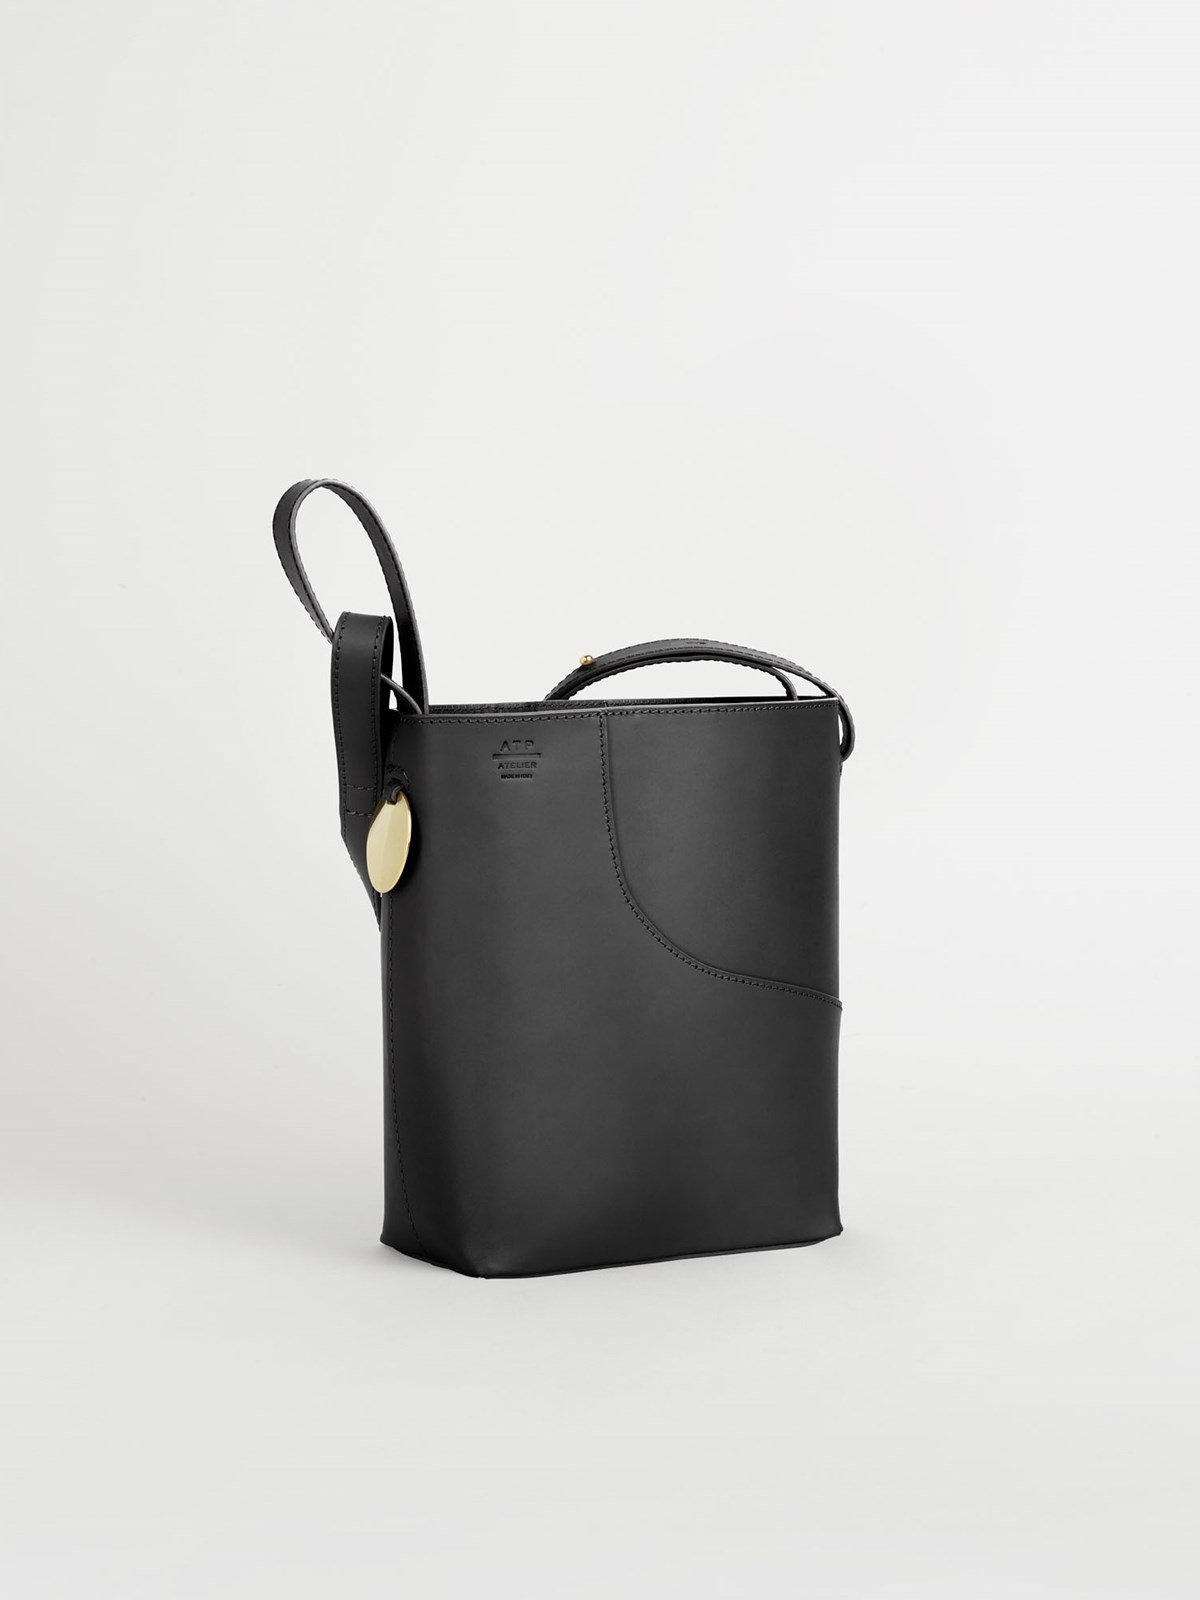 Piombino Black Small tote